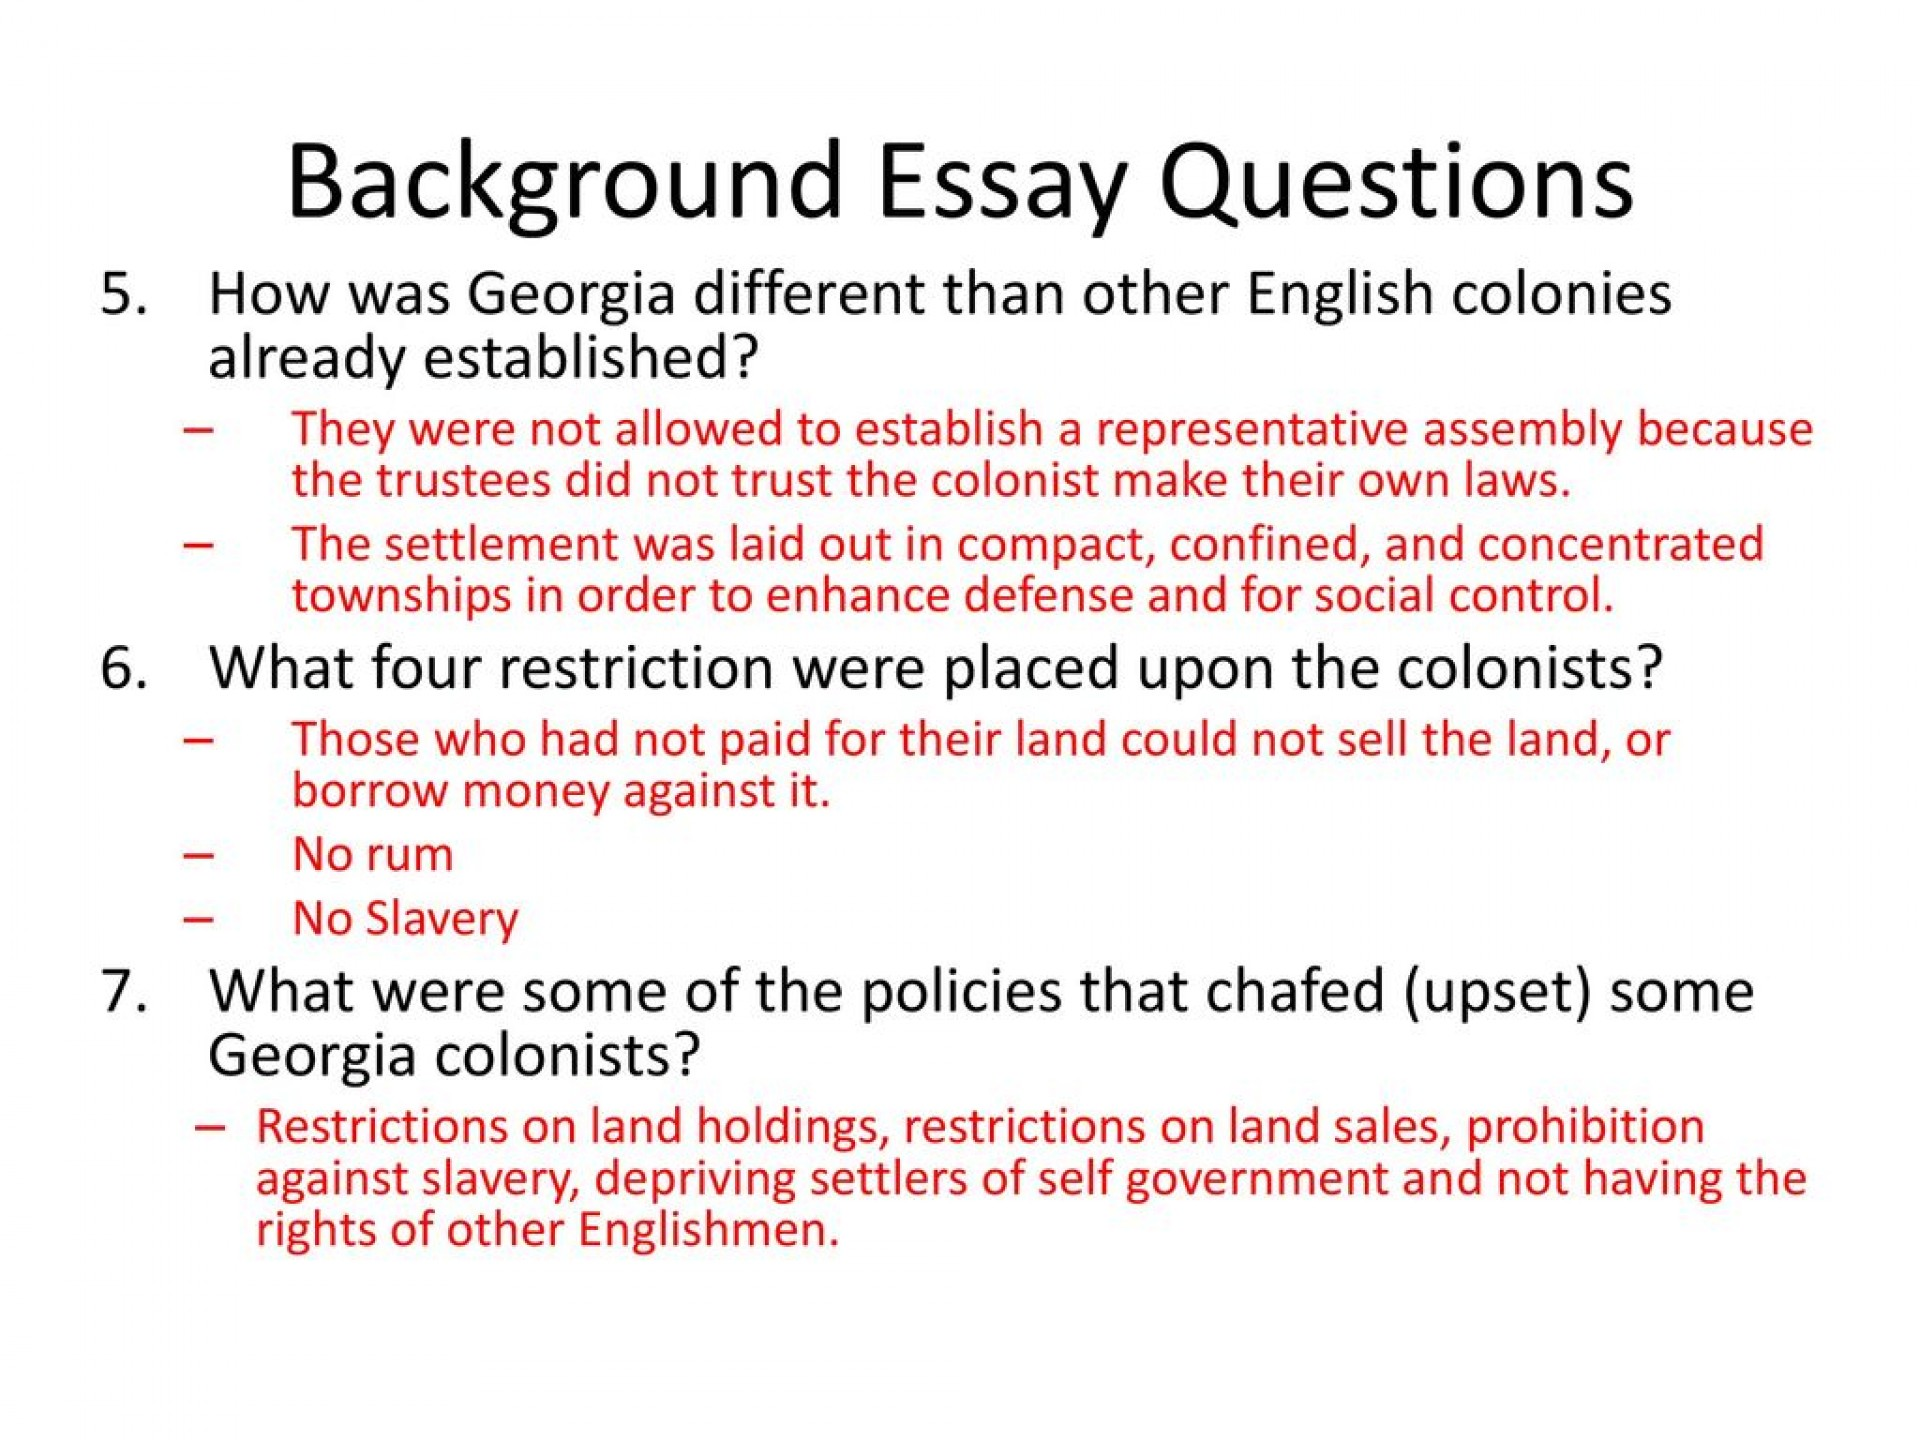 001 Background Essay Ppt Download Questions Answer Key Backgroundessayques Pearl Harbor Electoral College Declaration Of Independence Salem Mini Q Causes Ww1 Harriet Tubman Stupendous Answers Sample Examples 1920